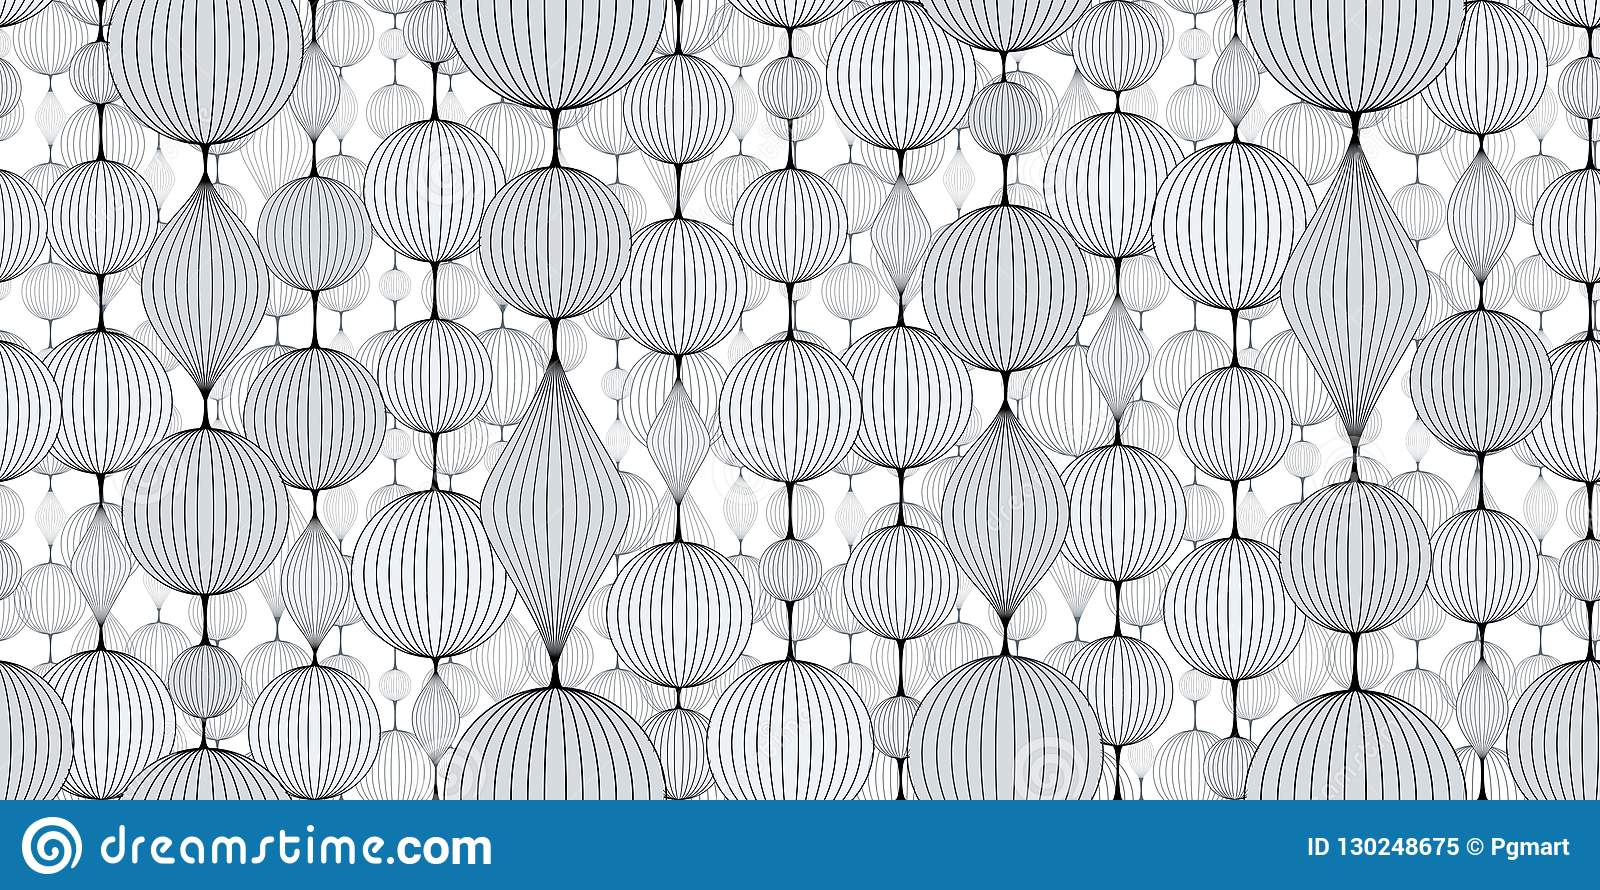 Seamless Abstract Wallpaper Pattern Garlands Of Bulk Balls In Shades Of White Stock Vector Illustration Of Material Application 130248675